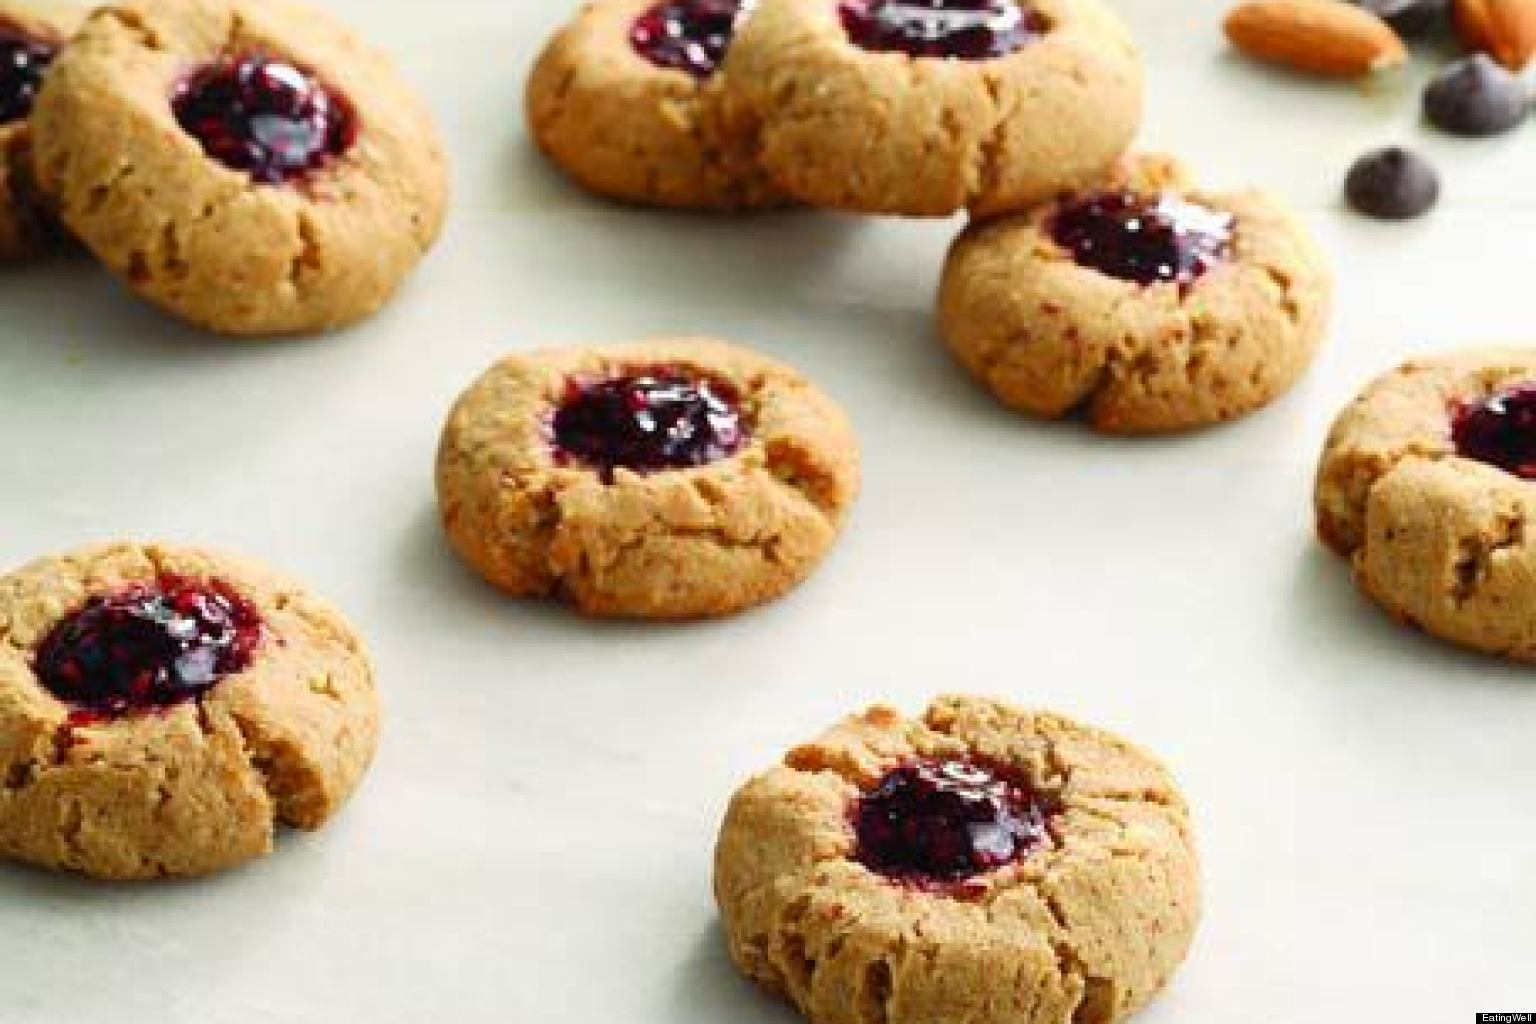 ... Of The Day: Chocolate Thumbprint Cookie Recipe (PHOTO) | HuffPost